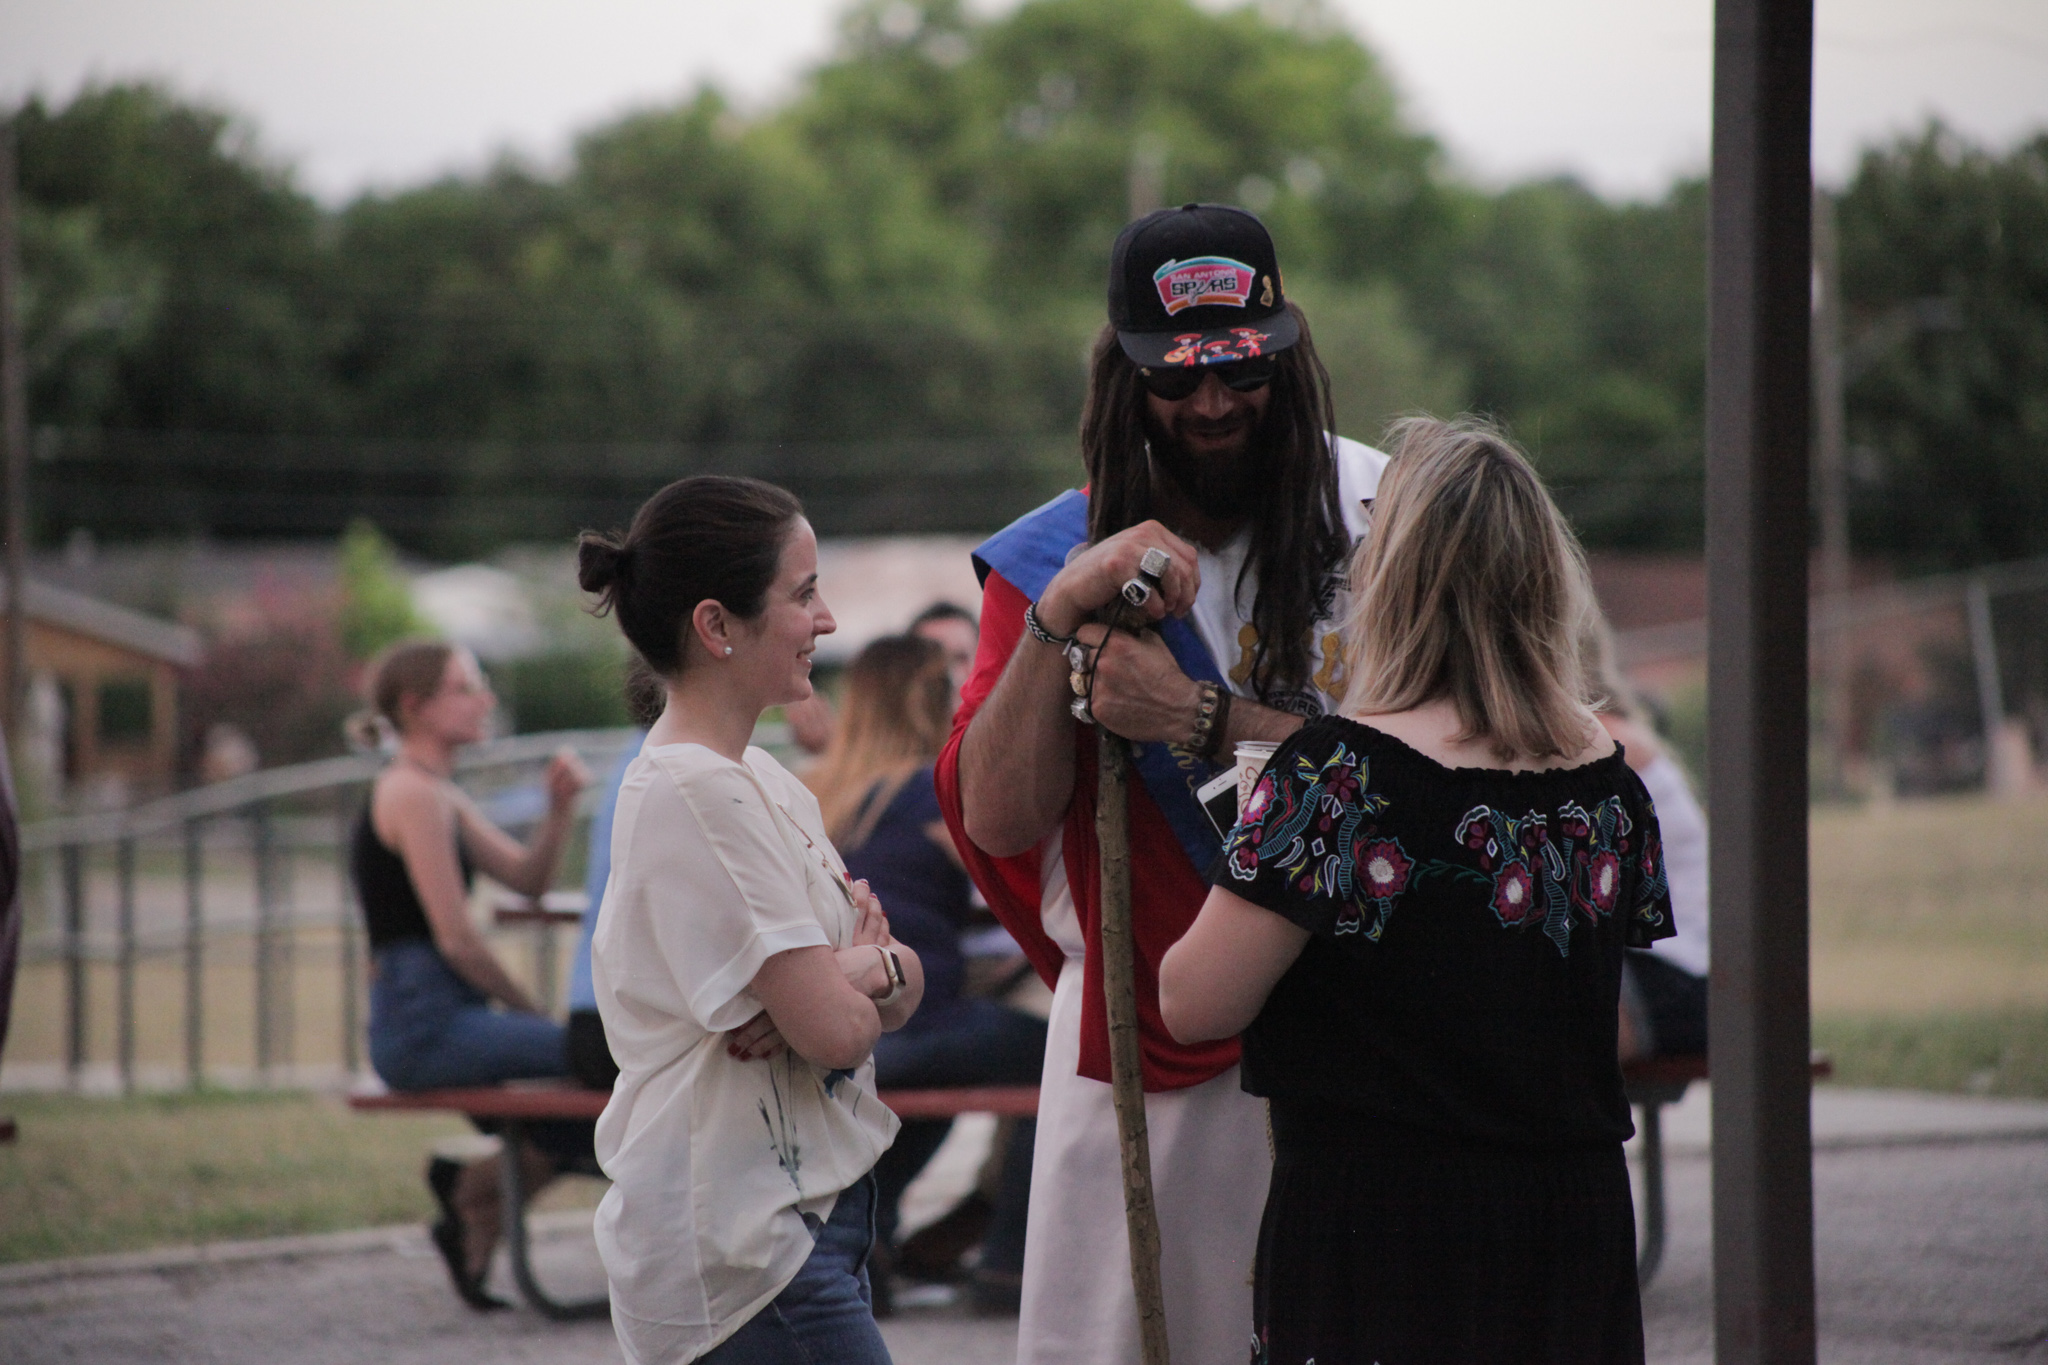 """Local icon Cord Maldonado commonly known as """"Spurs Jesus"""" chats with attendees before his presentation at PechaKucha."""